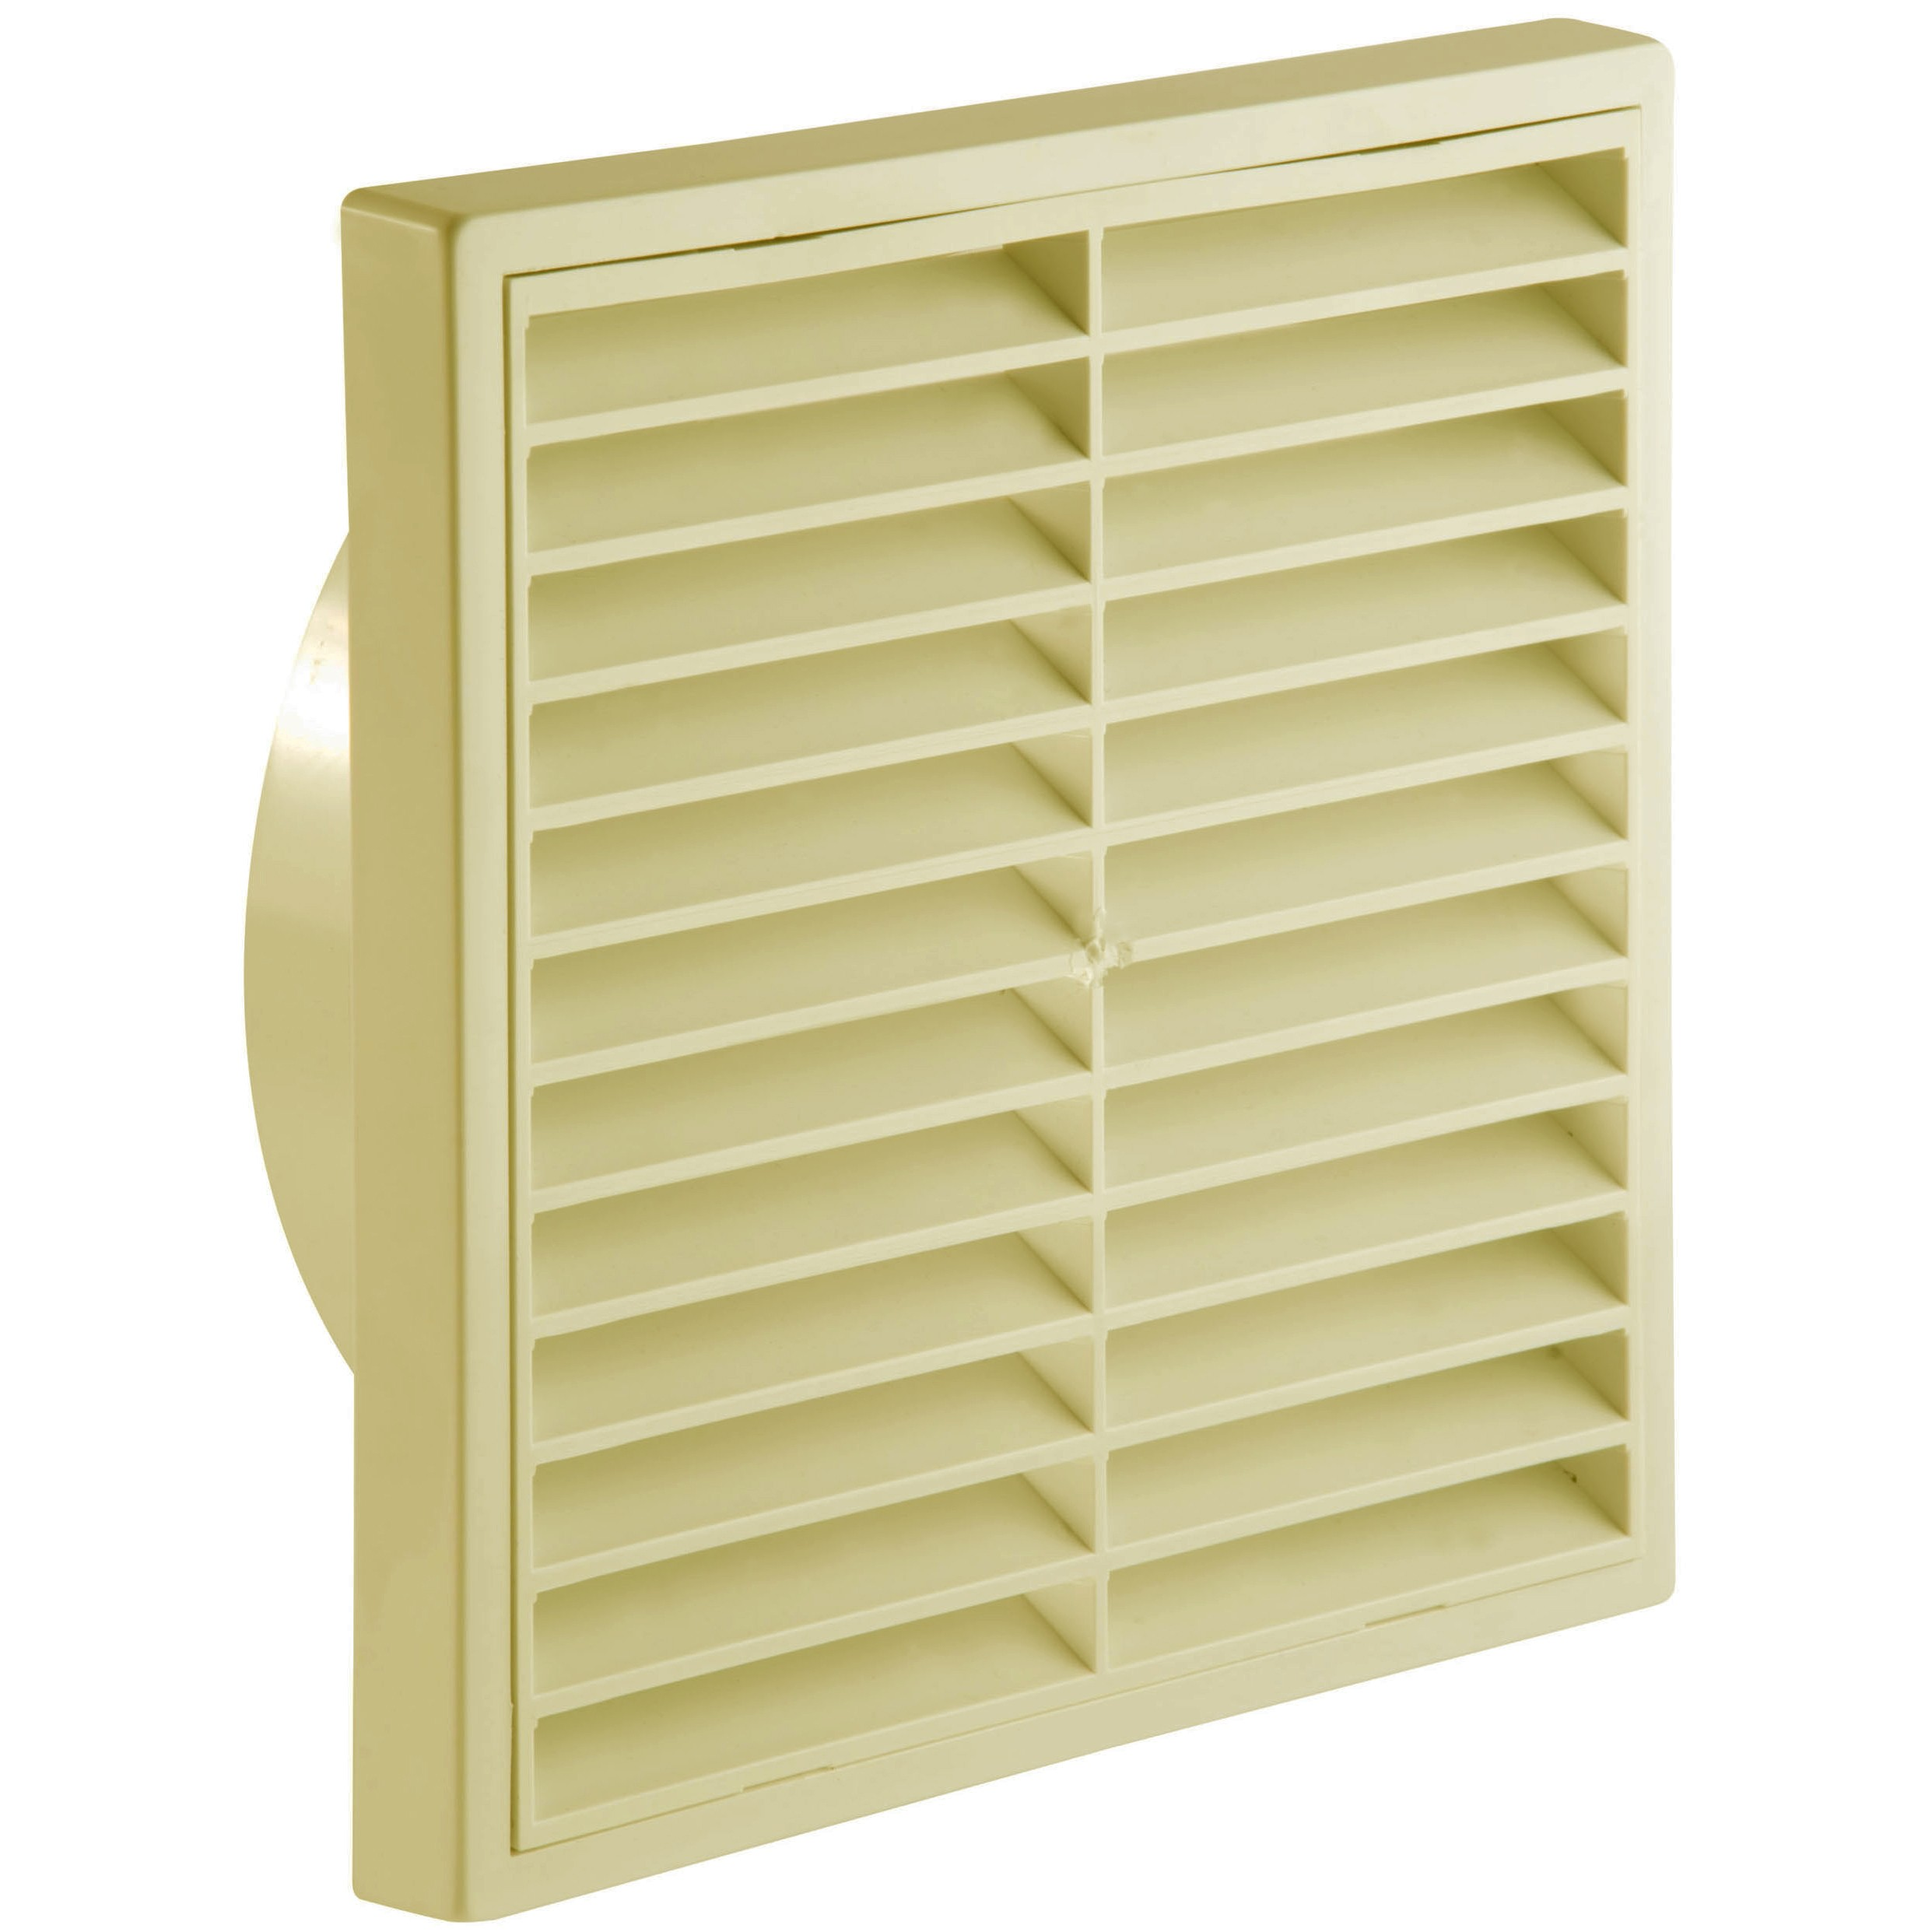 Manrose Round Ducting Pipe Fixed Grille Vent Outlet - Cream, 125mm